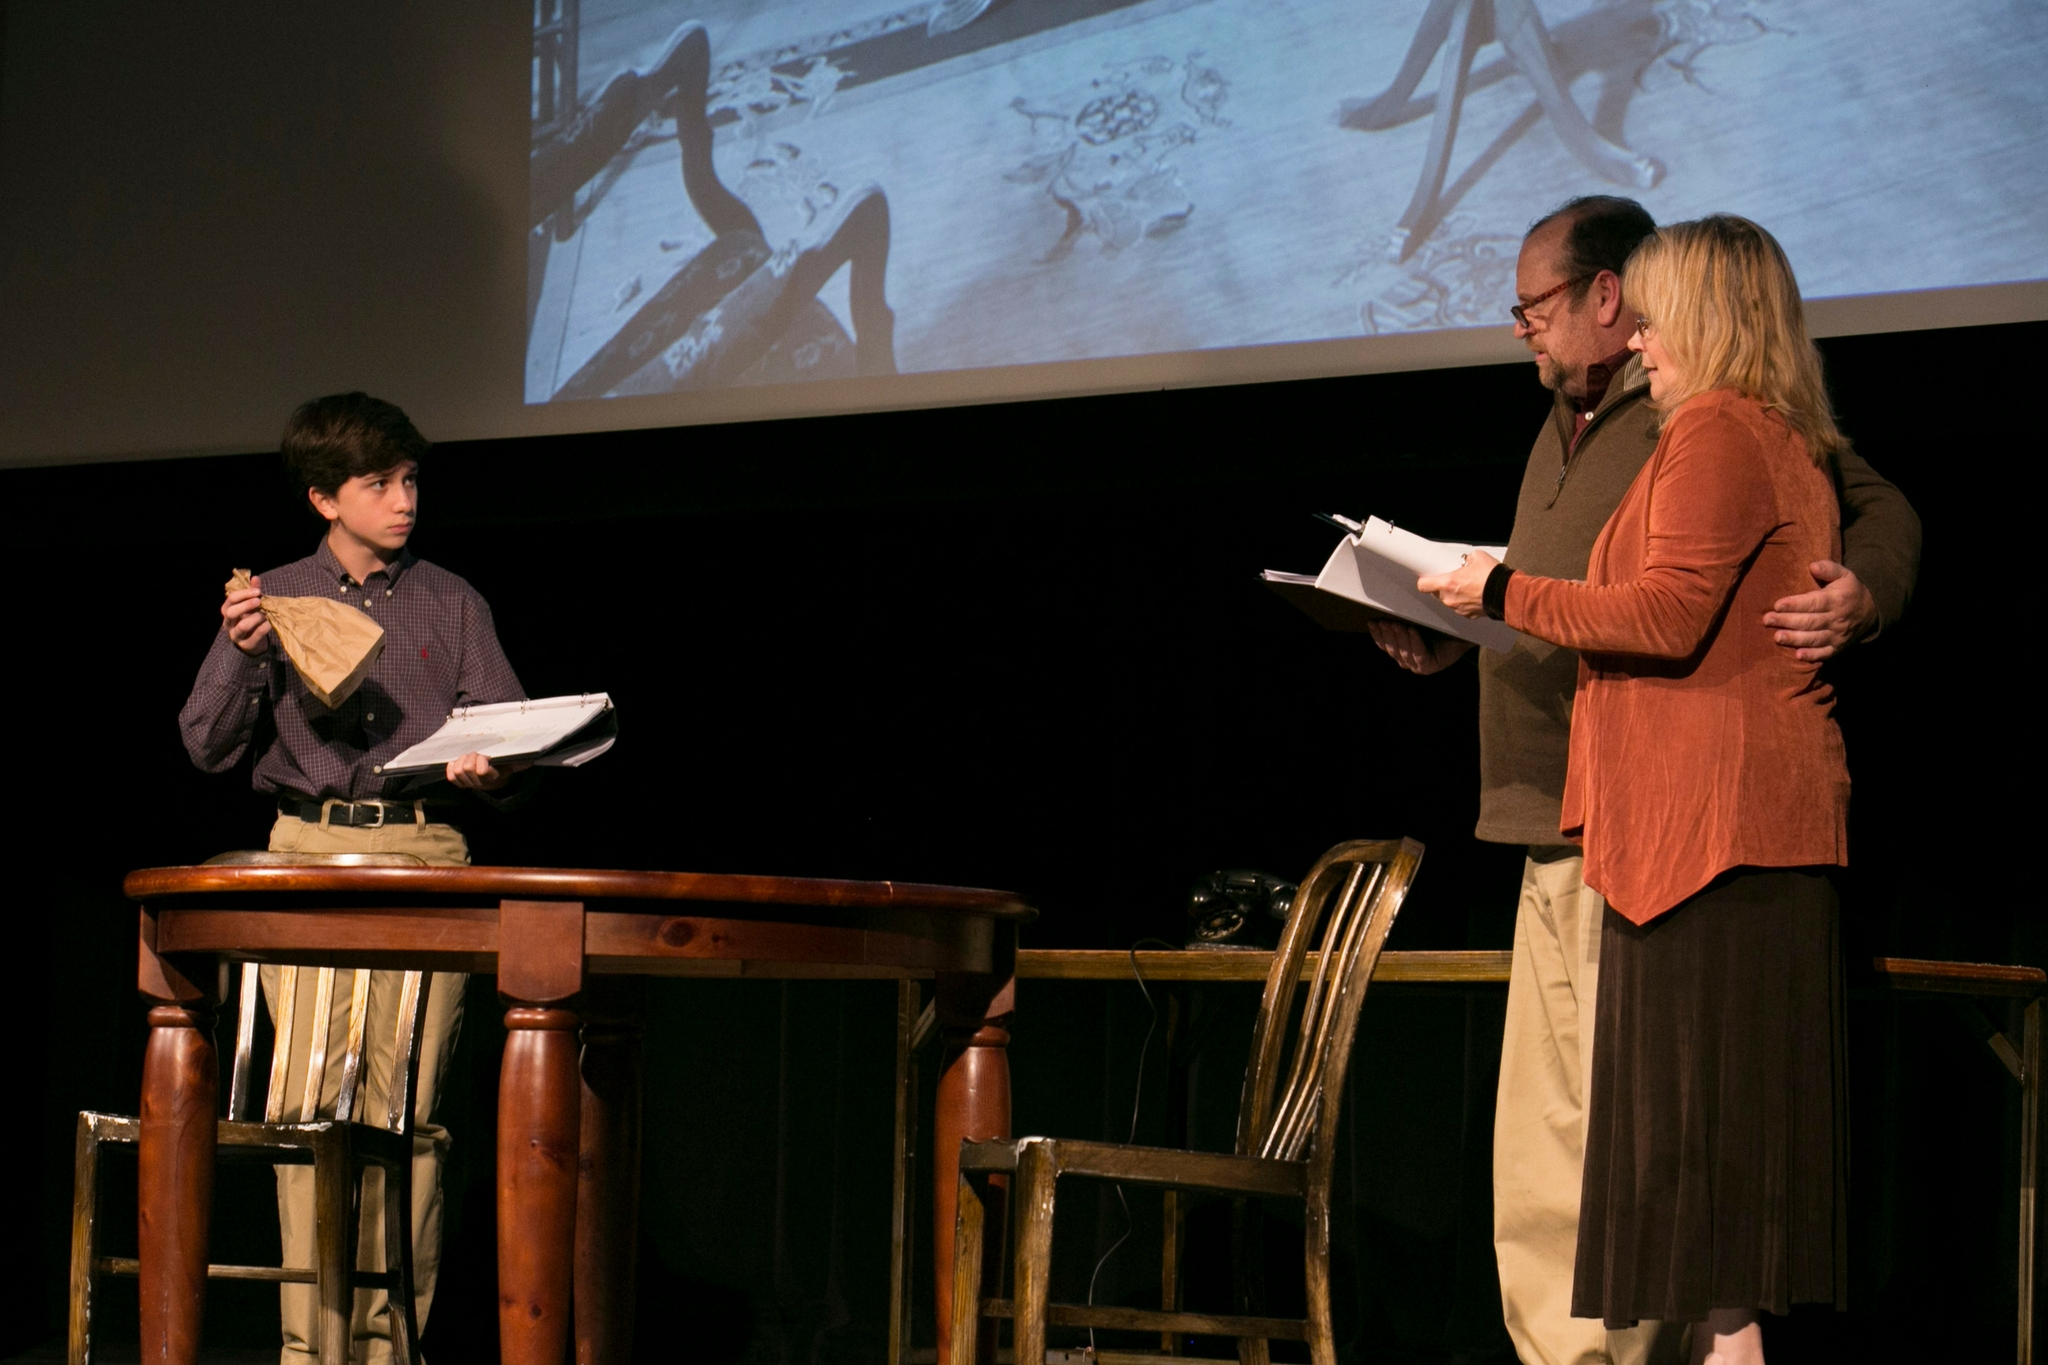 Seamus Doyle (Boy), Karen MacDonald (Wife), and Brandon Whitehead (Husband) in Fear and Misery in the Third Reich, Theatre in the Rough, 2017-Photo by Evgenia Eliseeva